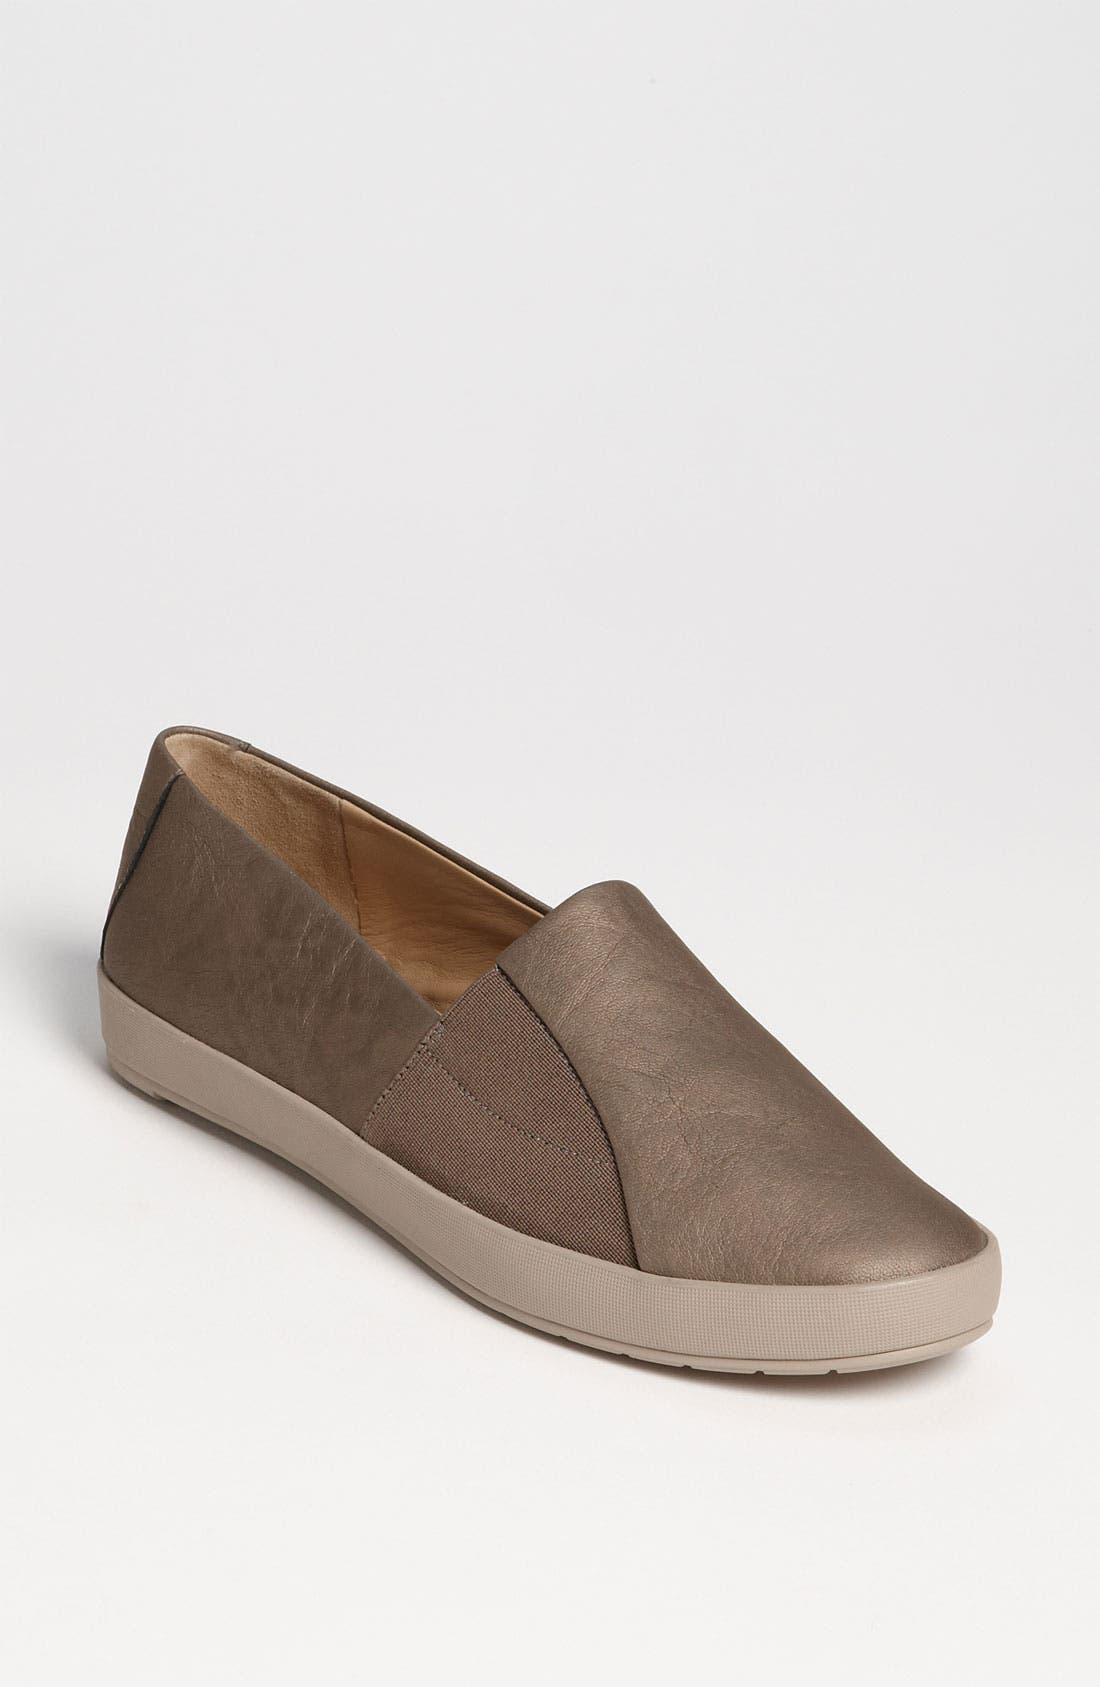 Alternate Image 1 Selected - Eileen Fisher 'Chase' Loafer